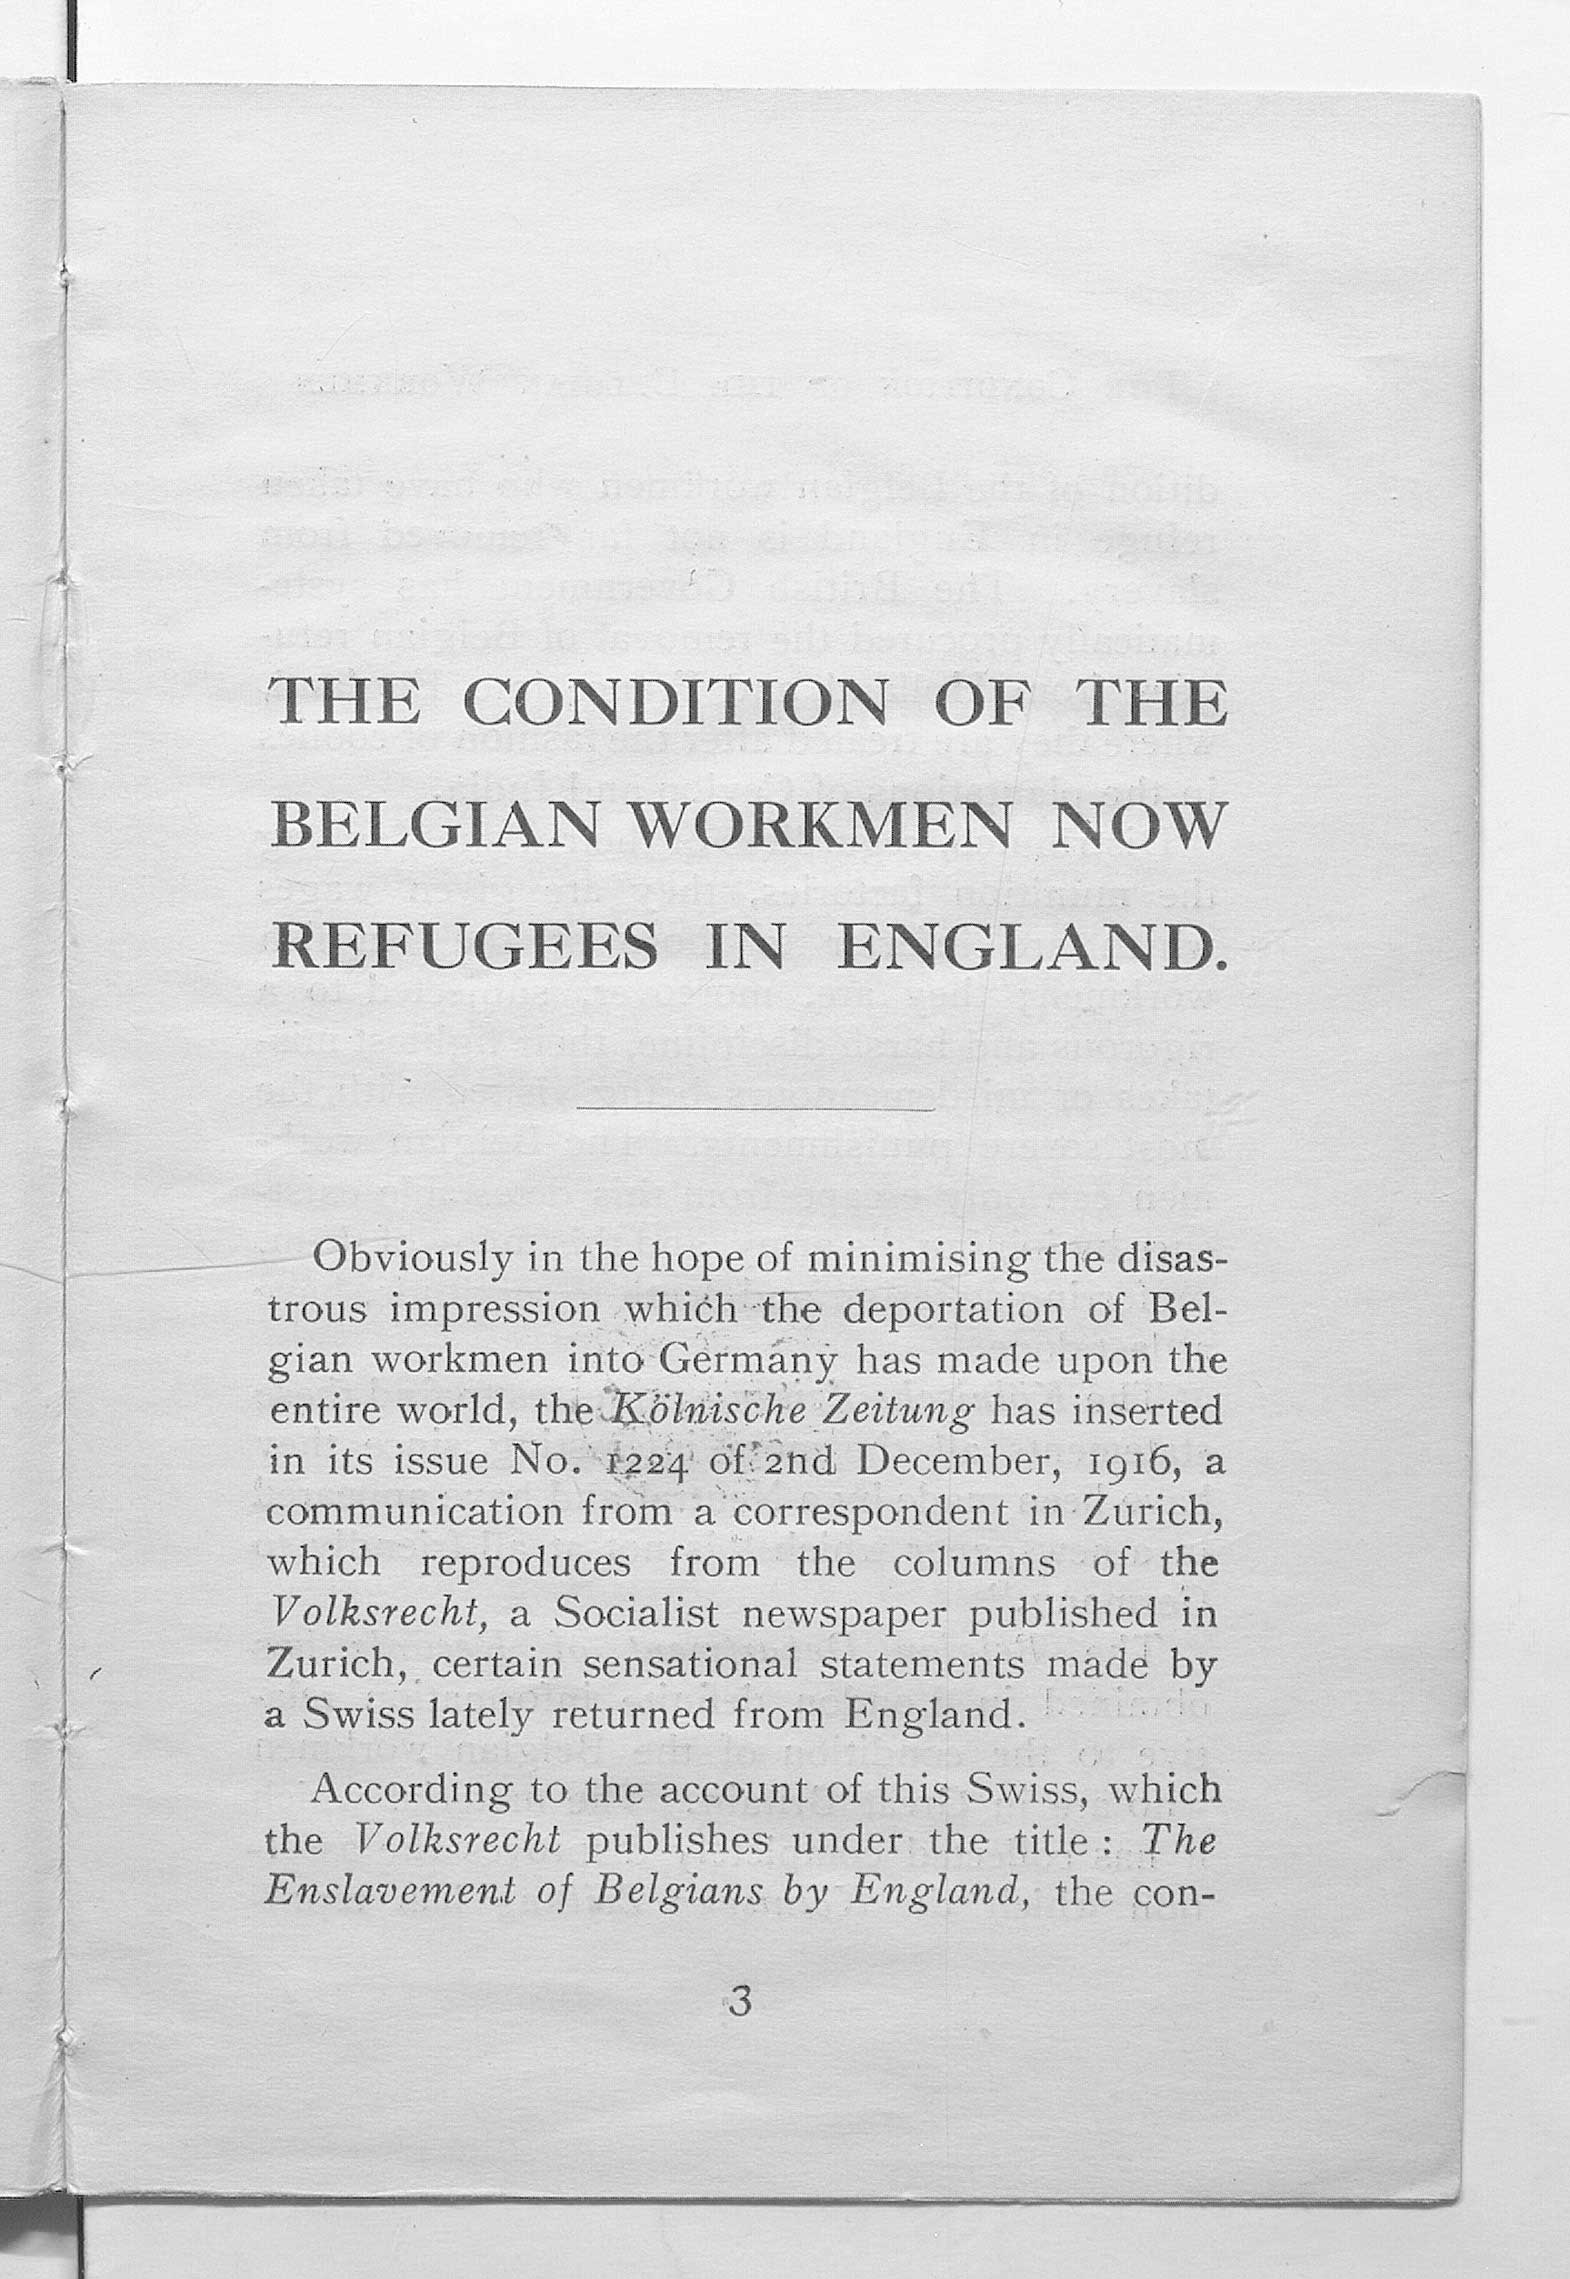 Booklet from 1917 which wanted to dispel claims that Belgian refugee workmen were being exploited in England.